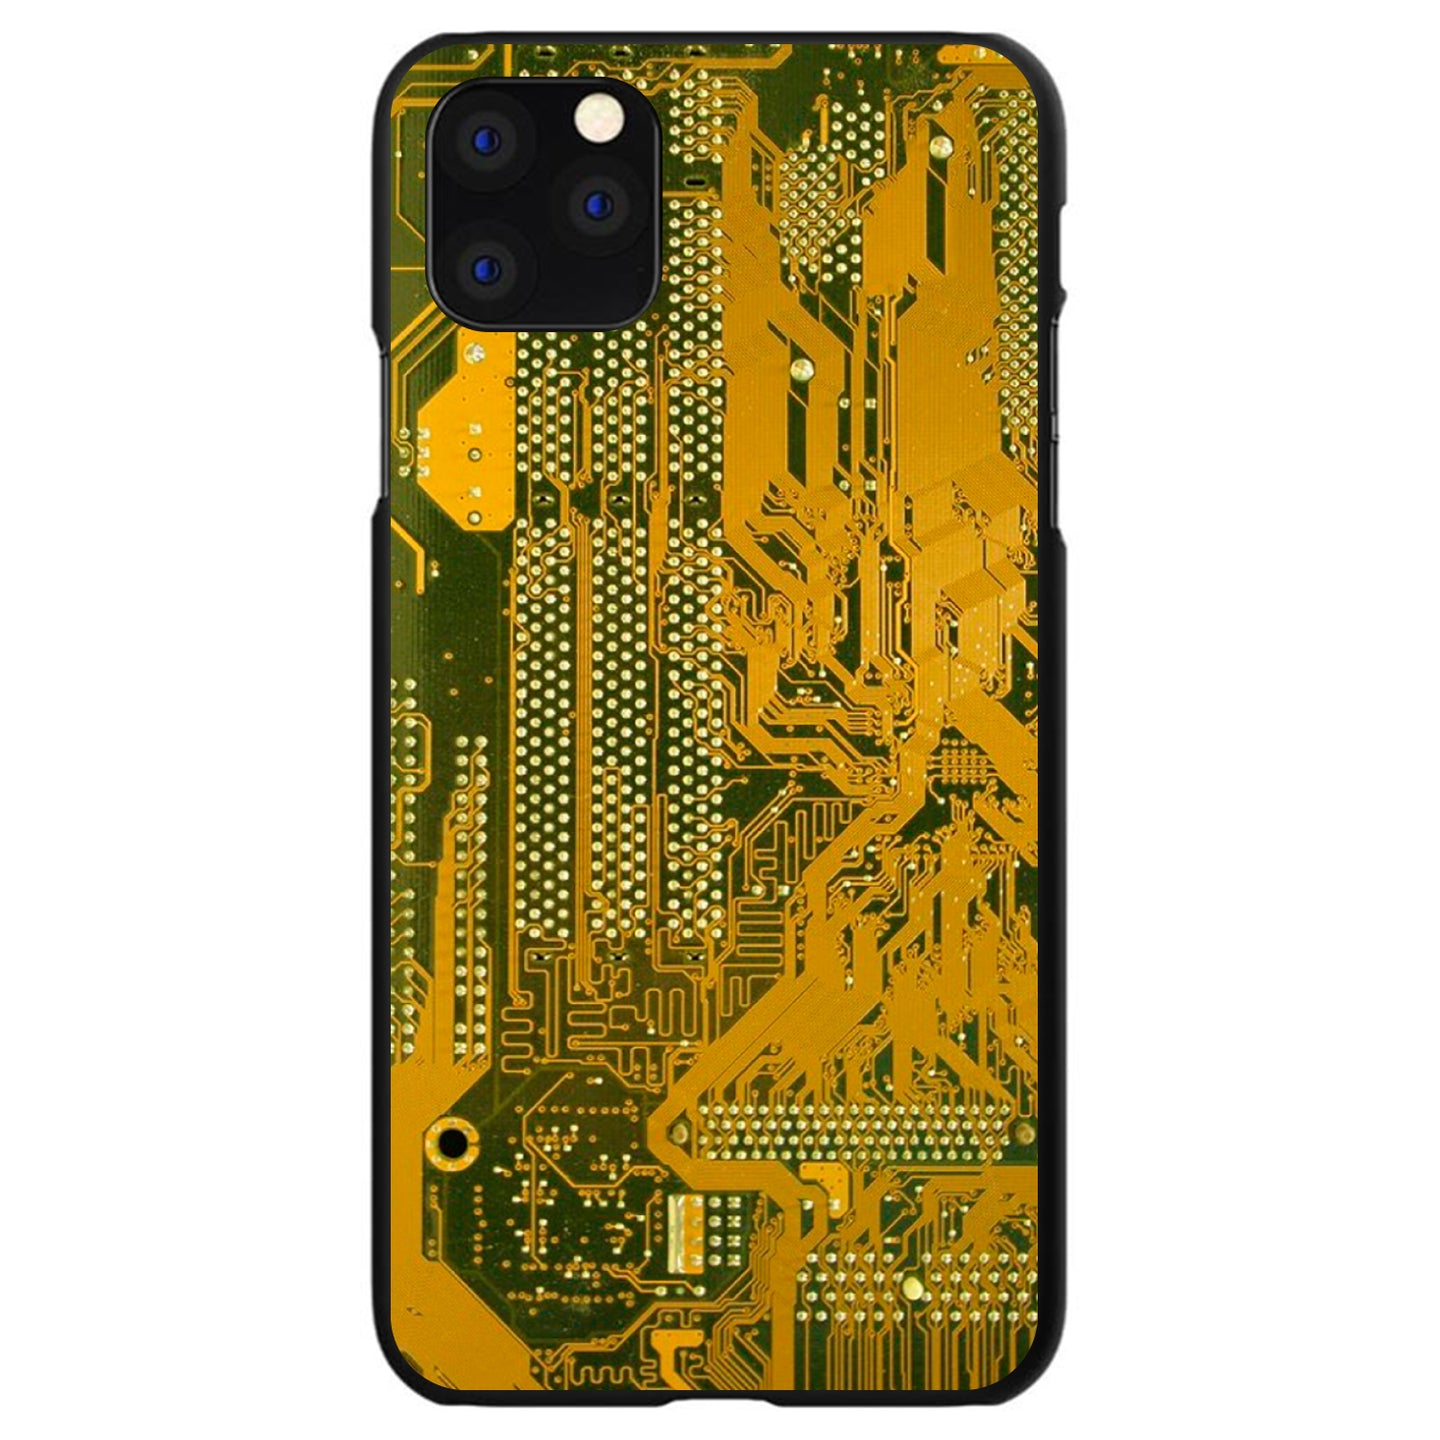 DistinctInk® Hard Plastic Snap-On Case for Apple iPhone - Yellow Circuit Board